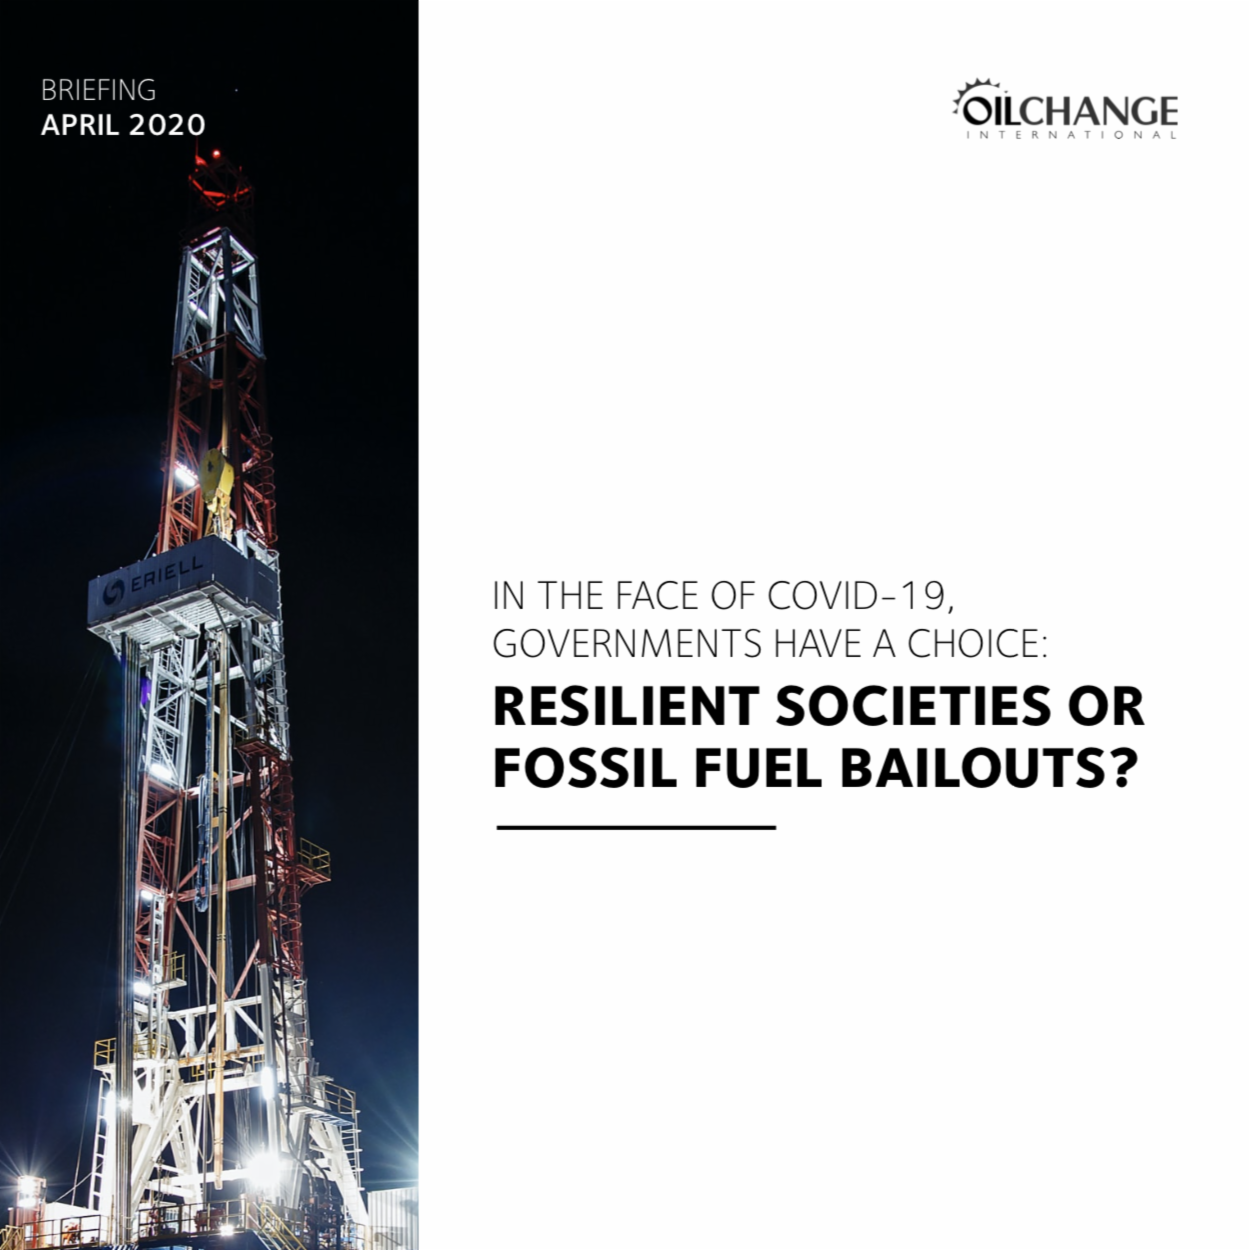 In the Face of COVID-19, Governments Have a Choice: Resilient Societies or Fossil Fuel Bailouts?